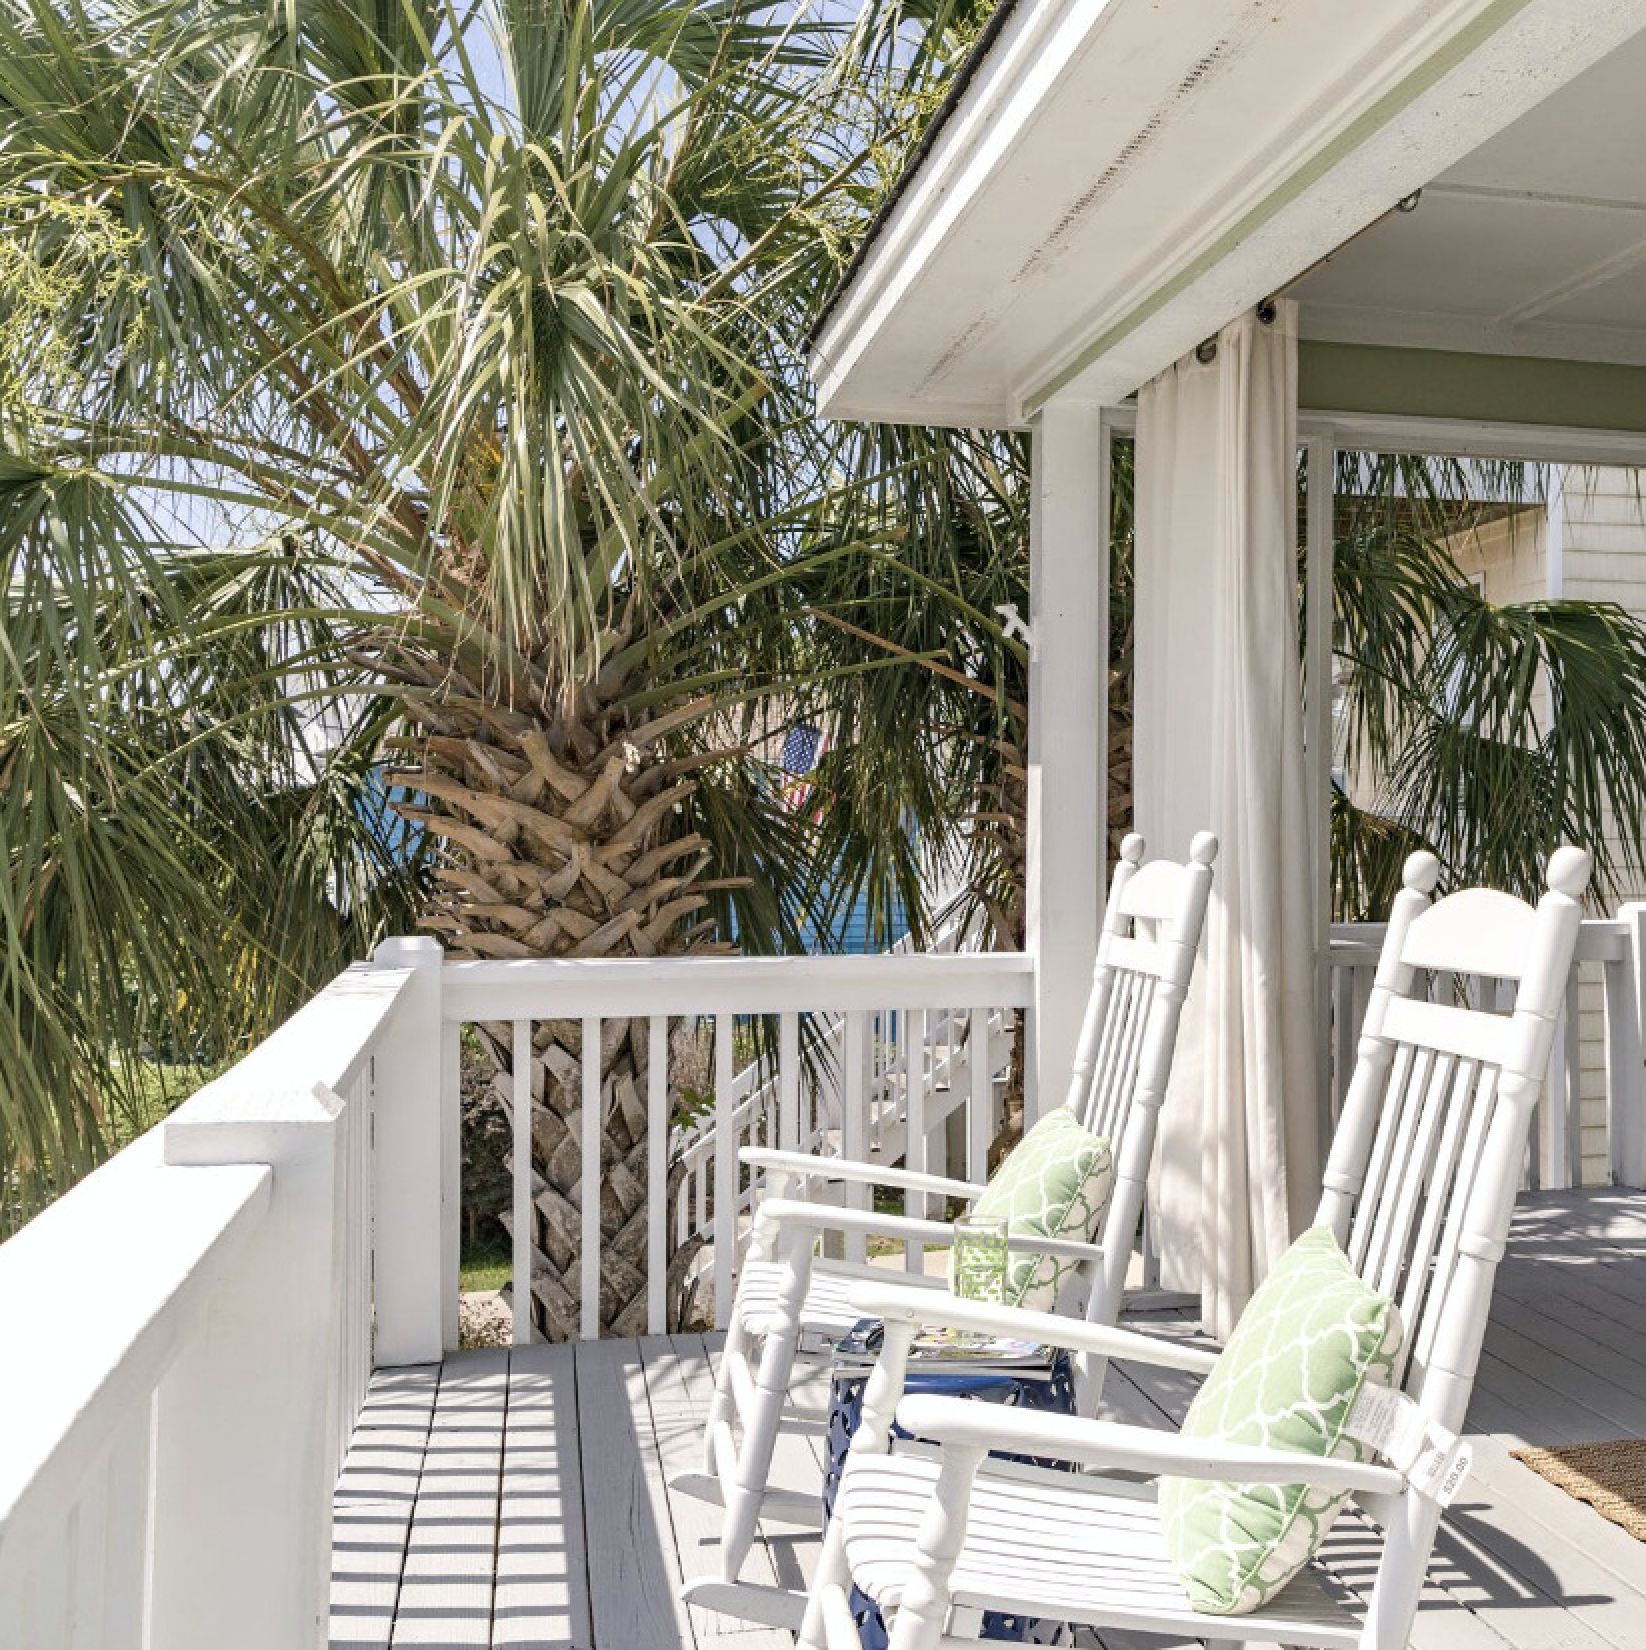 Rocking Chair On The Porch at Kure Beach